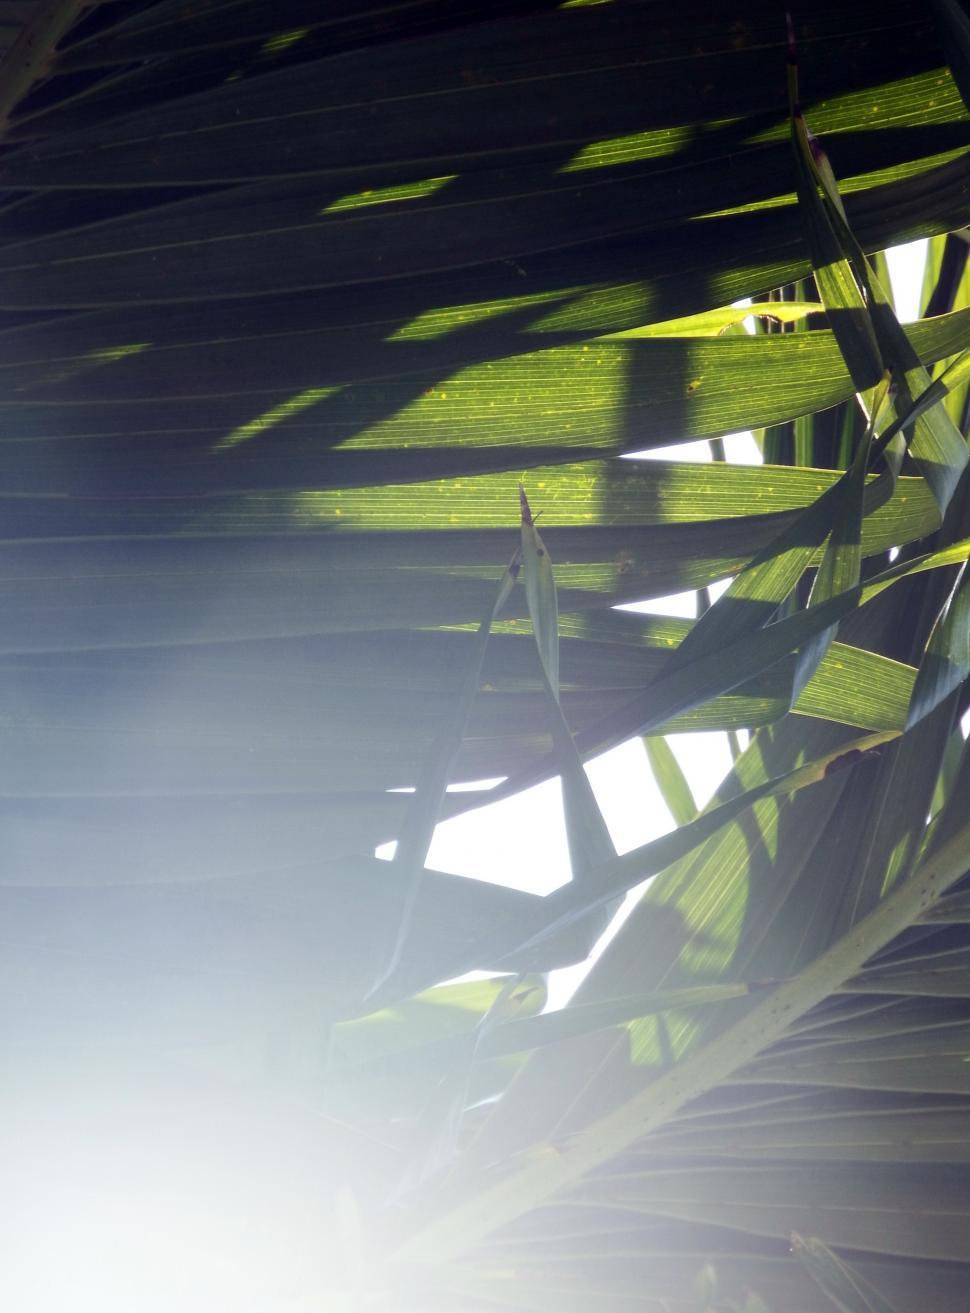 Download Free Stock HD Photo of Sunlight Shining through the Tropical Forest  Online